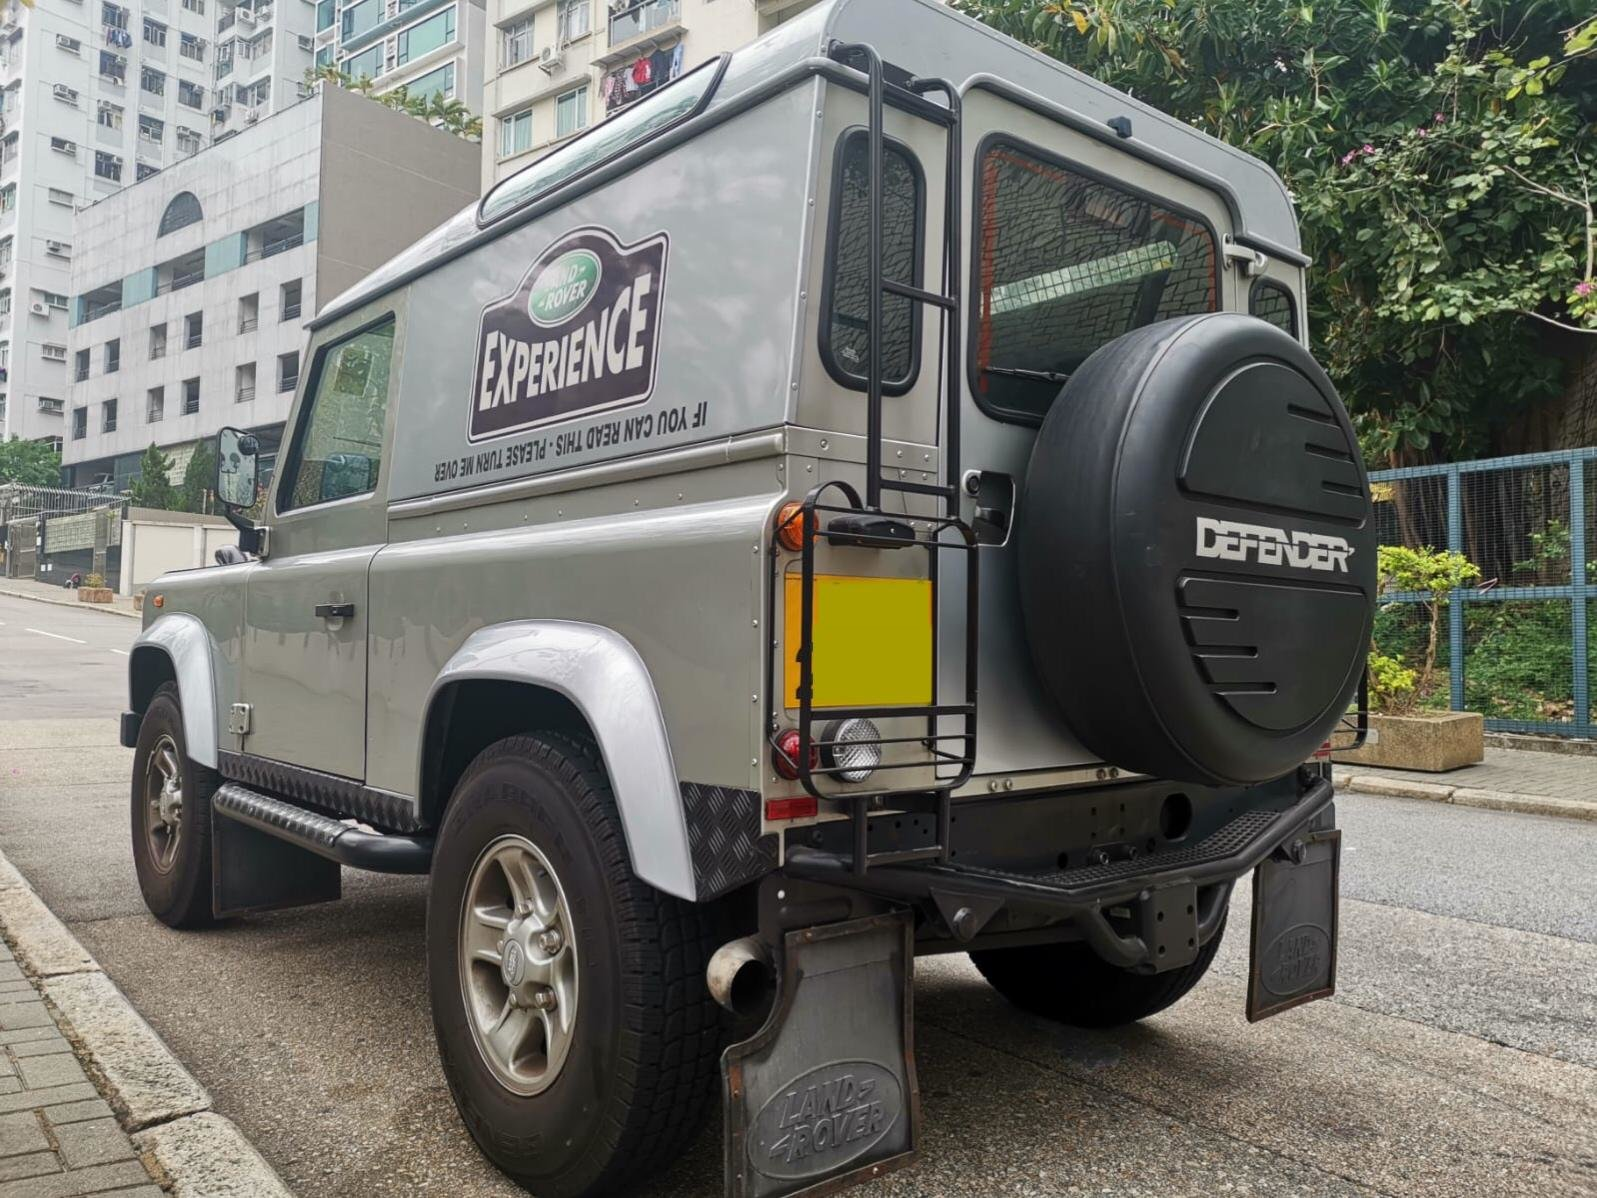 2007 Land Rover Defender 90  For Sale (picture 2 of 6)